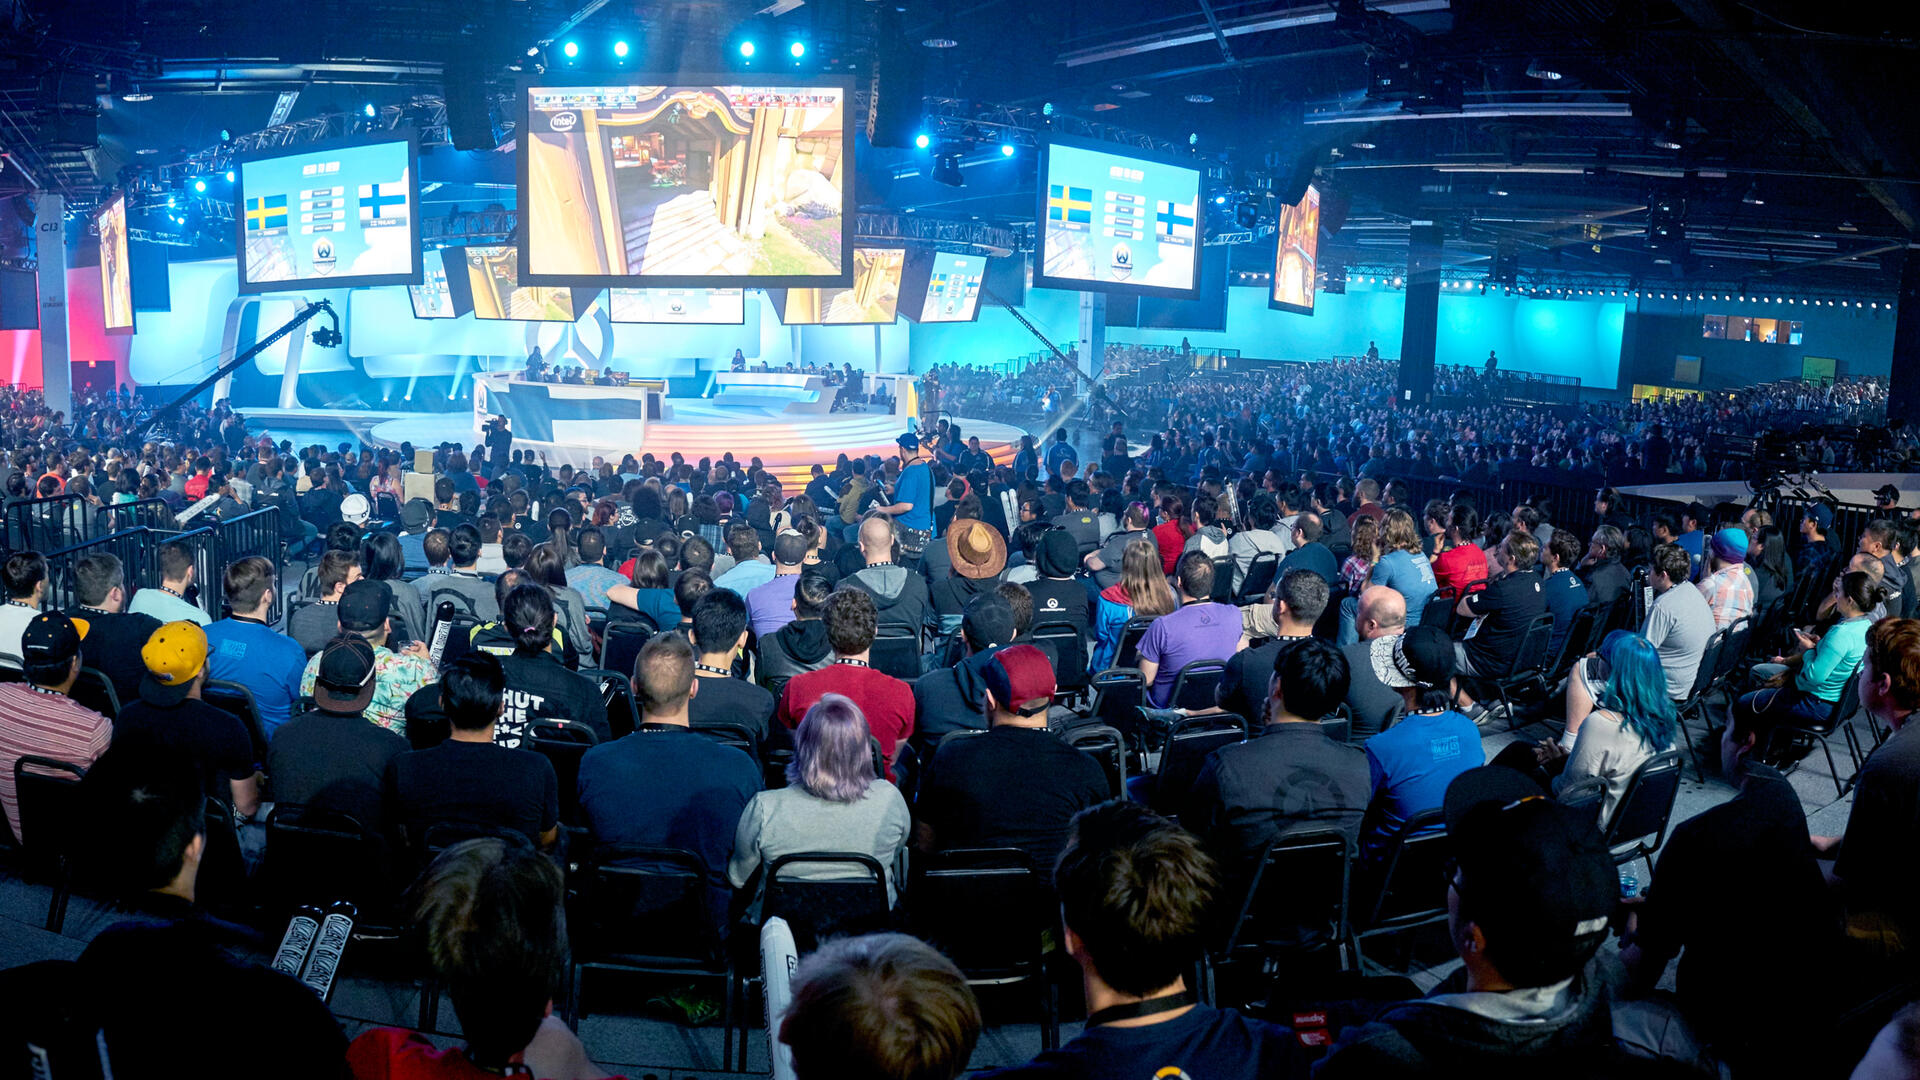 Blizzard Announces the Blizzard Arena Los Angeles for Major Esports Competitions